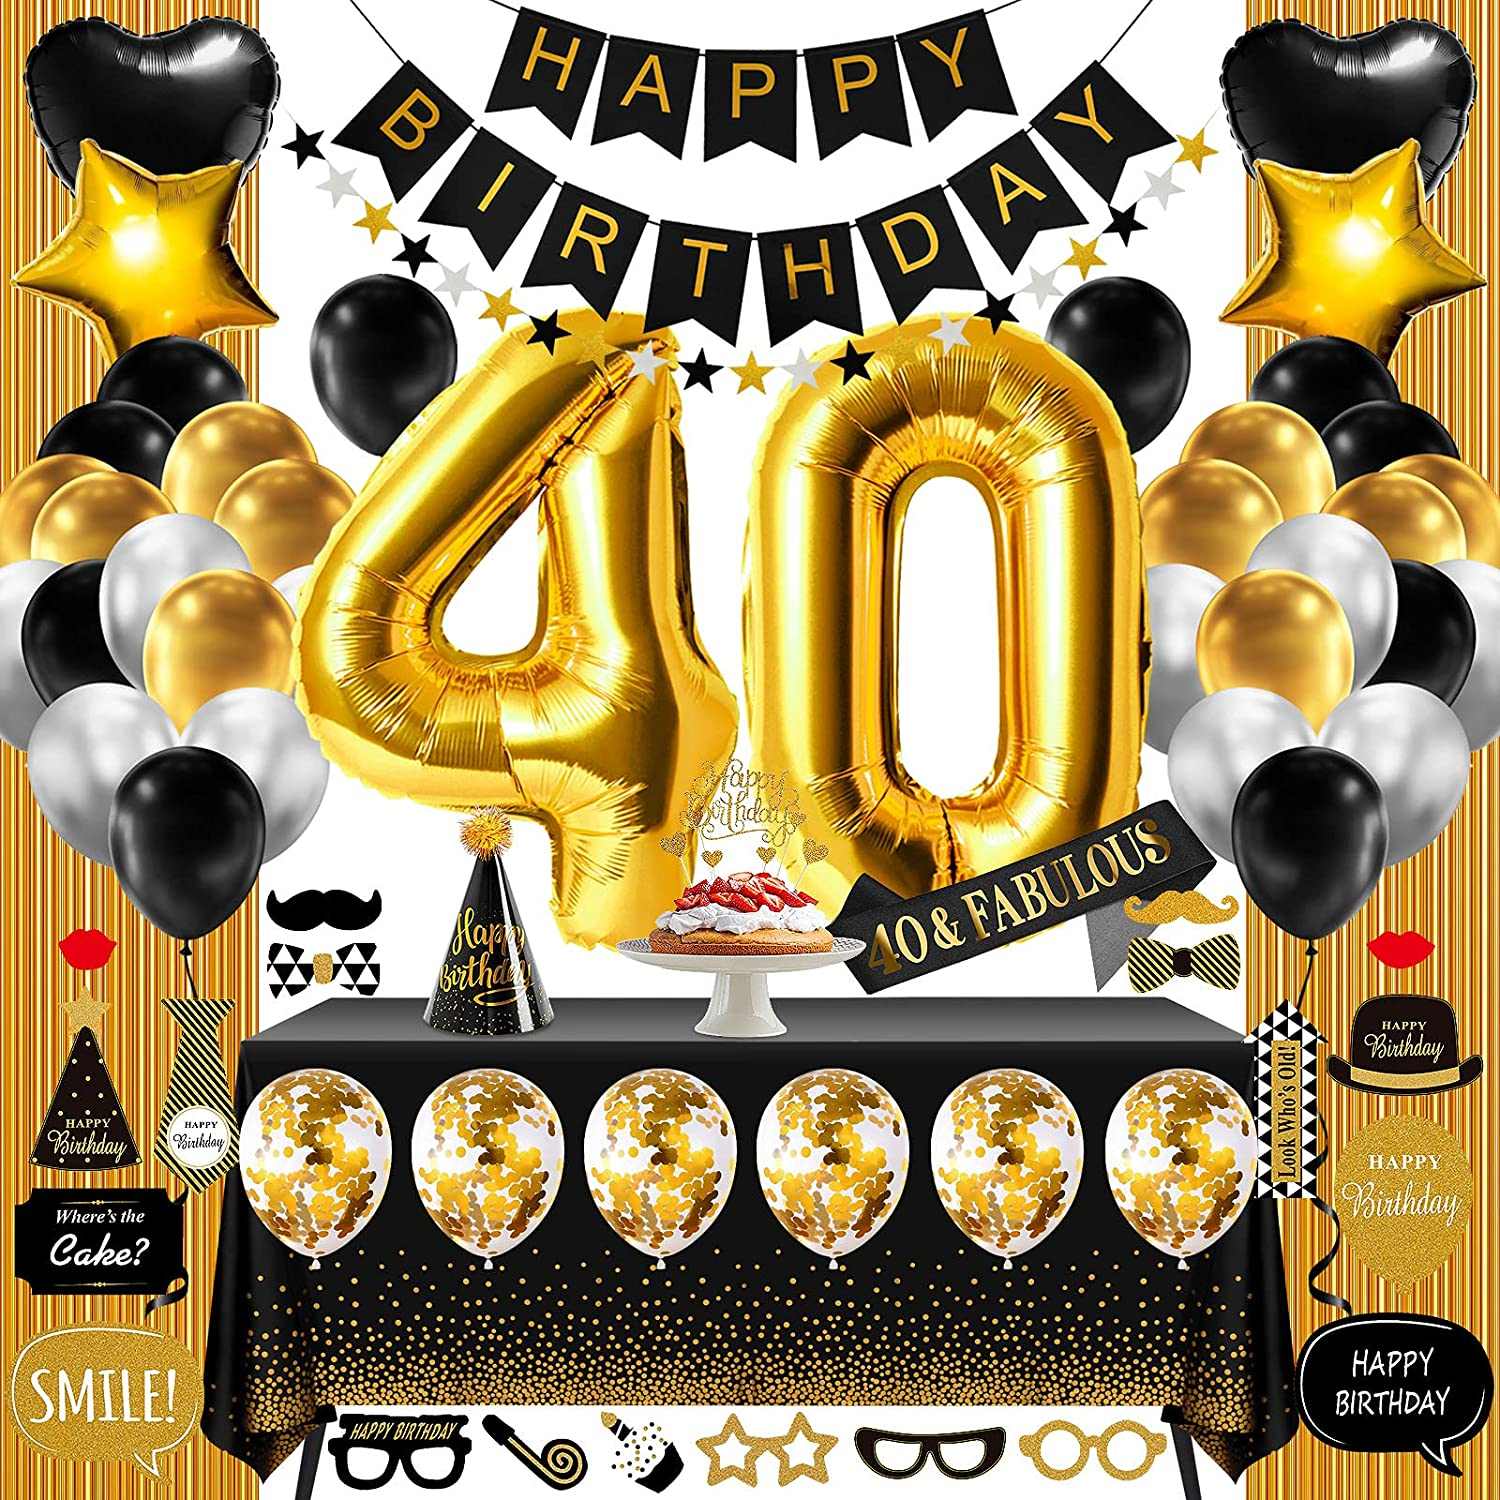 DaShan 10x10ft Black and Gold Stars Happy 40th Birthday Backdrop Cake Table Gold Glitter Confetti Women Lady Man Forty Birthday Photography Background Adults Birthday Party Decor Photo Props